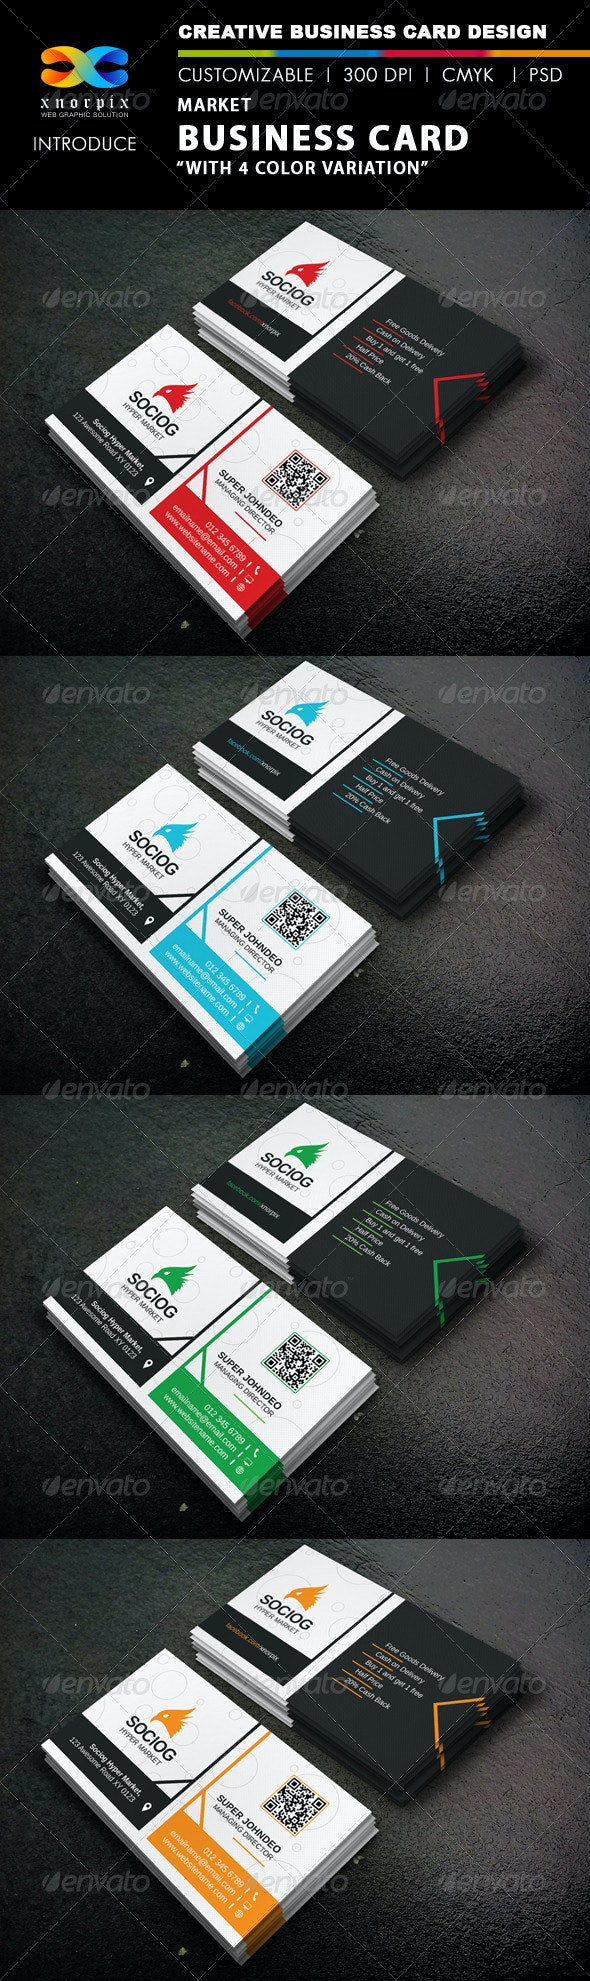 29 Best Business Card Templates & Designs  for March 2019